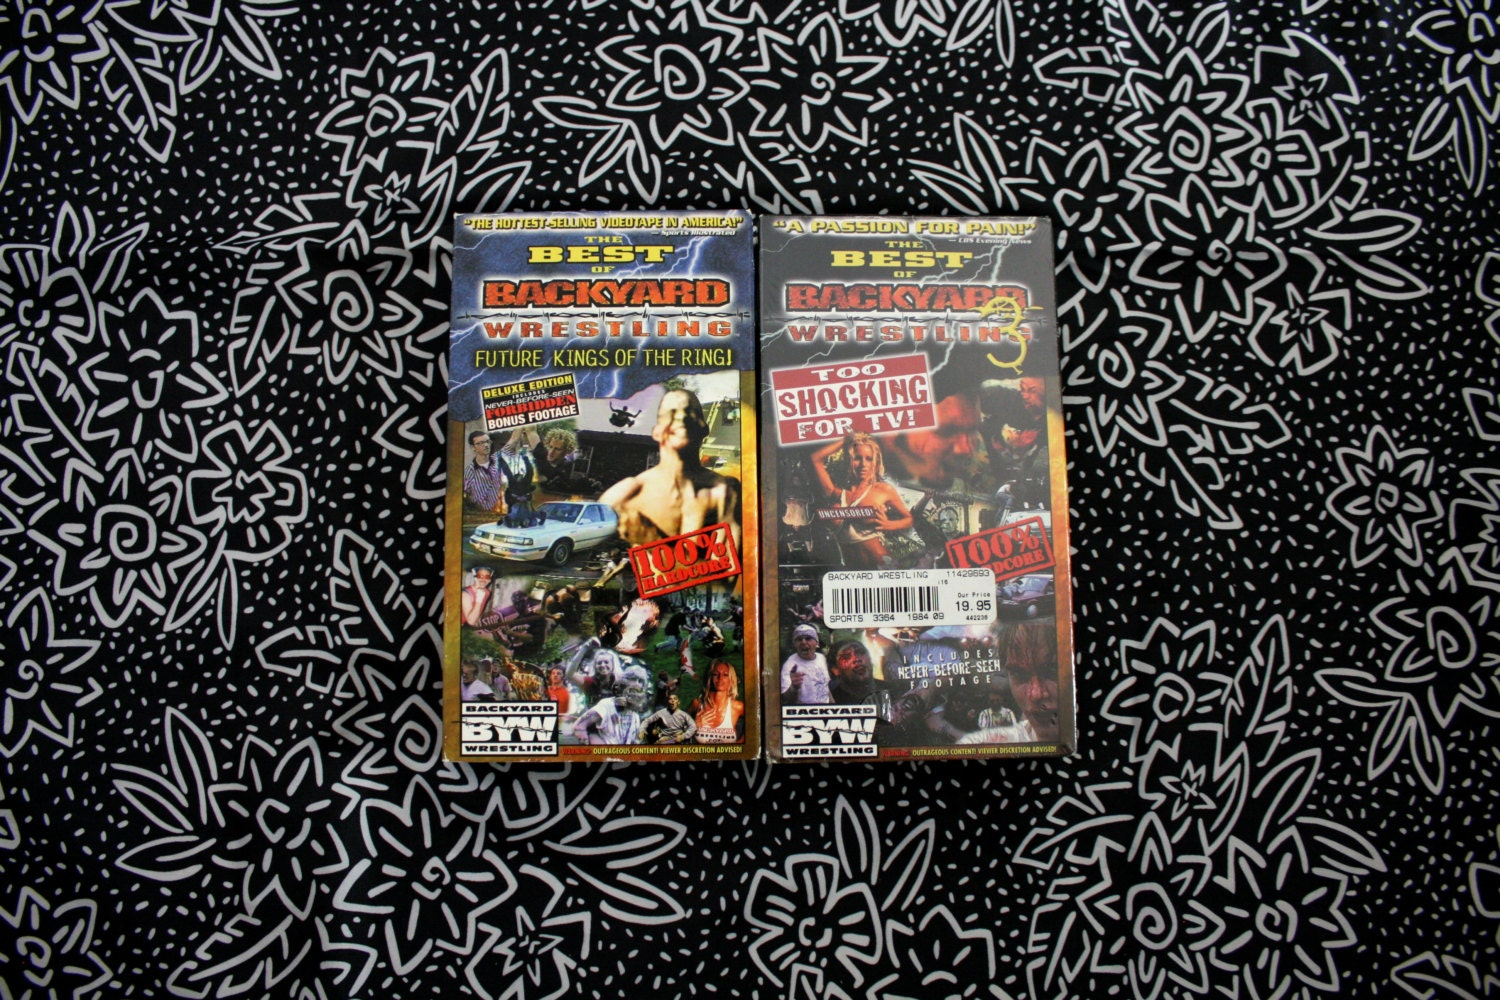 Best Of Backyard Wrestling the best of backyard wrestling vol. 1 and 3 vhs tapes. rare extreme